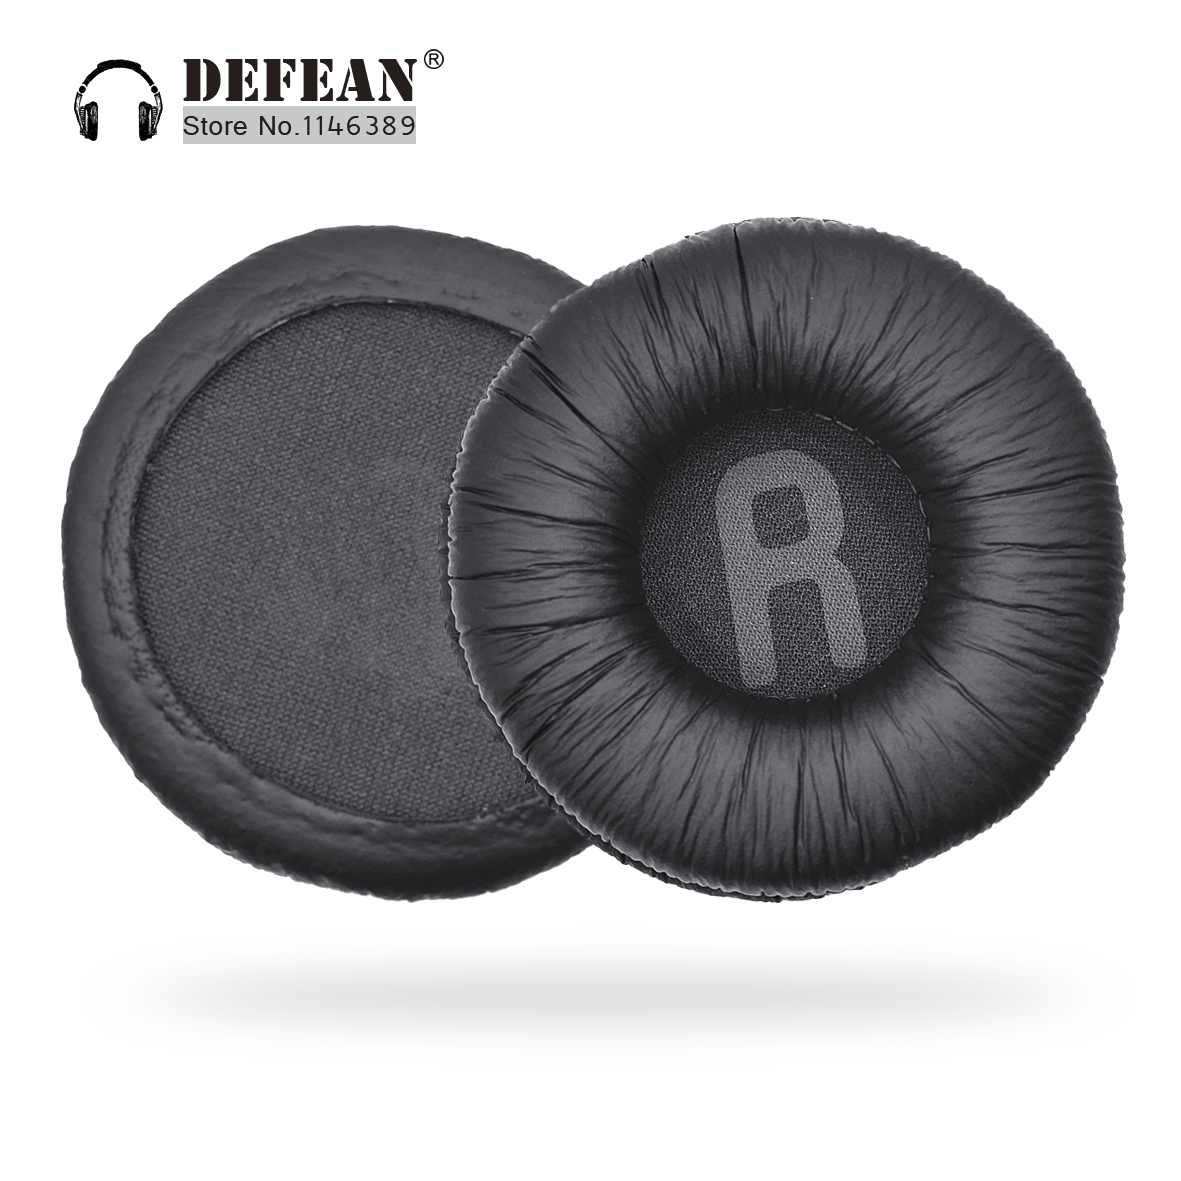 US $11.43 12% OFF|Replacement Ear Pads Cushion cover For JBL Tune 600 BTNC tune600 bt On Ear Bluetooth headphone in Earphone Accessories from Consumer